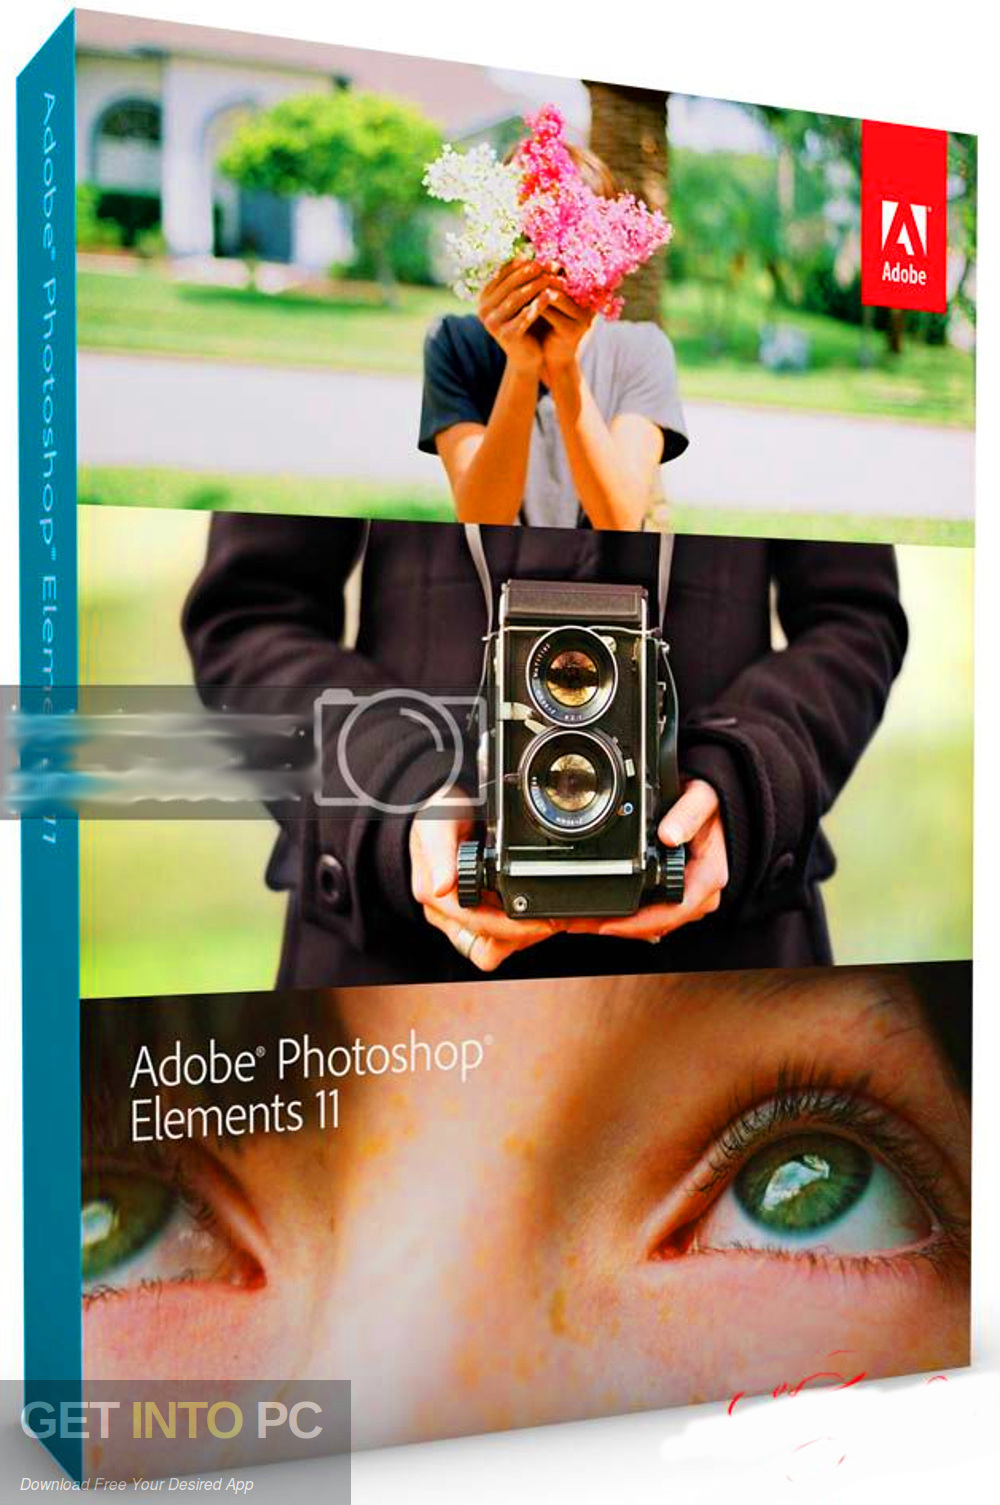 Adobe Photoshop Elements 11 Free Download-GetintoPC.com